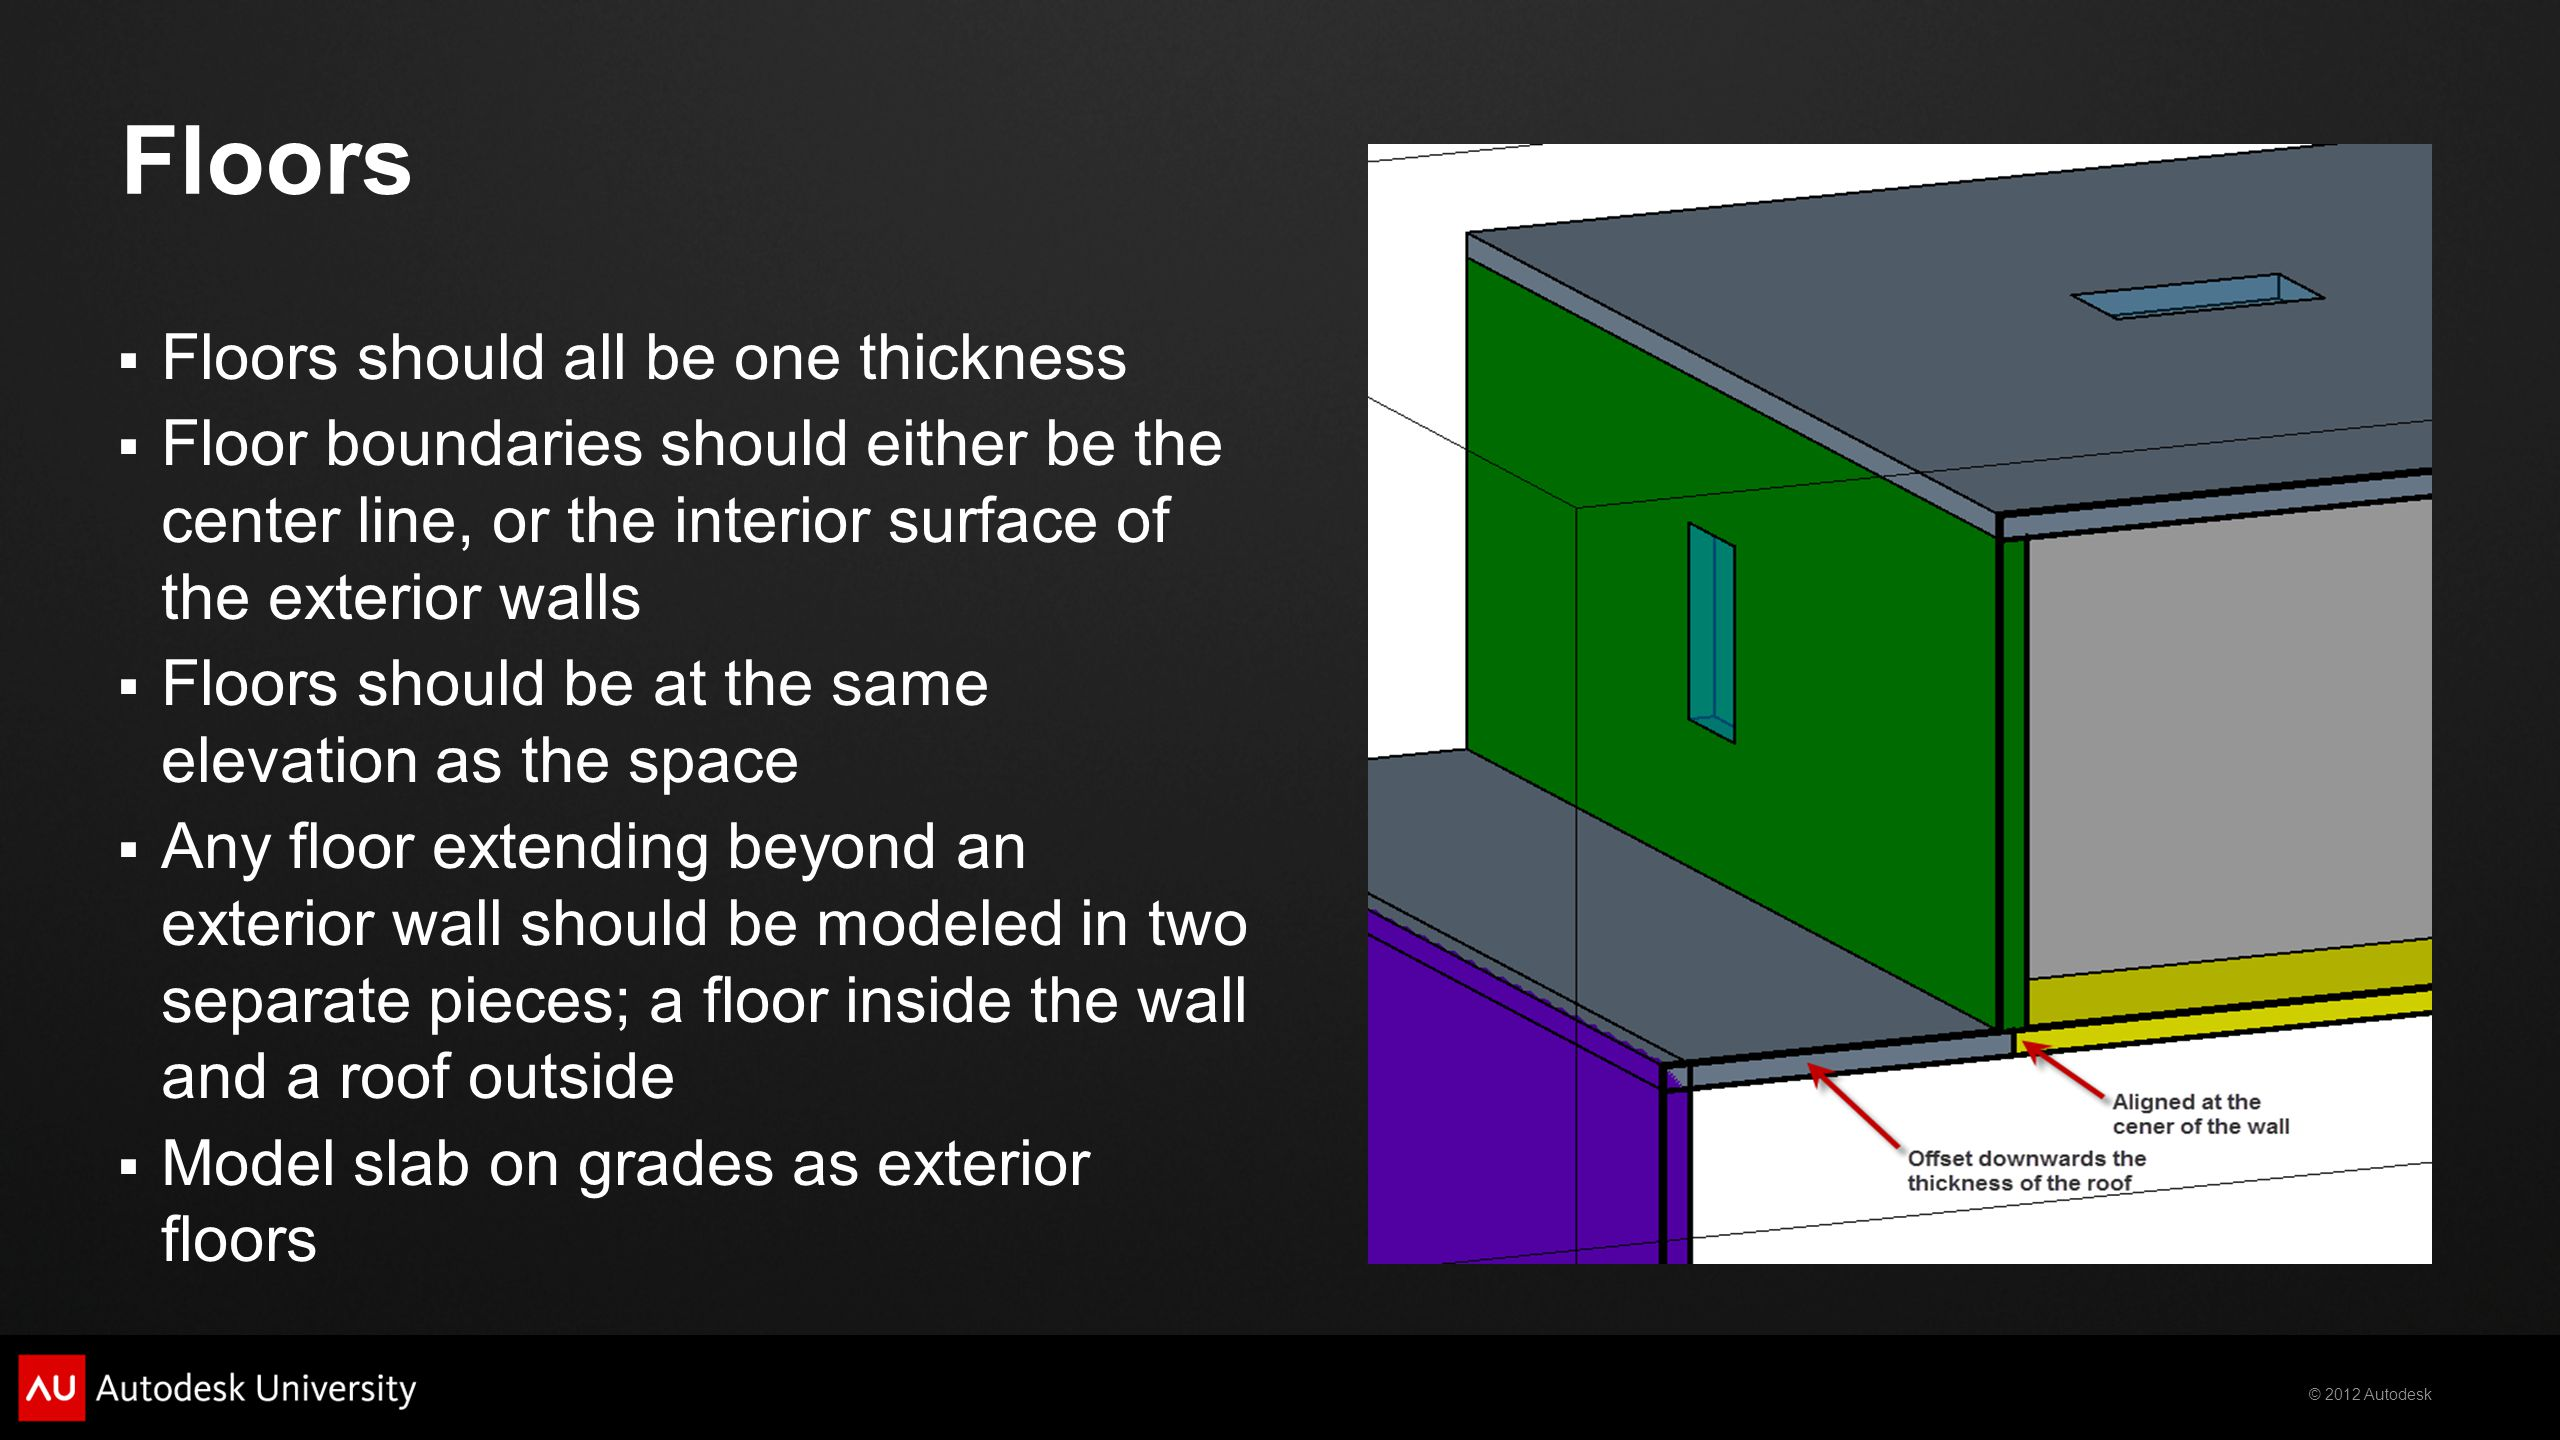 © 2012 Autodesk Floors Floors should all be one thickness Floor boundaries should either be the center line, or the interior surface of the exterior walls Floors should be at the same elevation as the space Any floor extending beyond an exterior wall should be modeled in two separate pieces; a floor inside the wall and a roof outside Model slab on grades as exterior floors